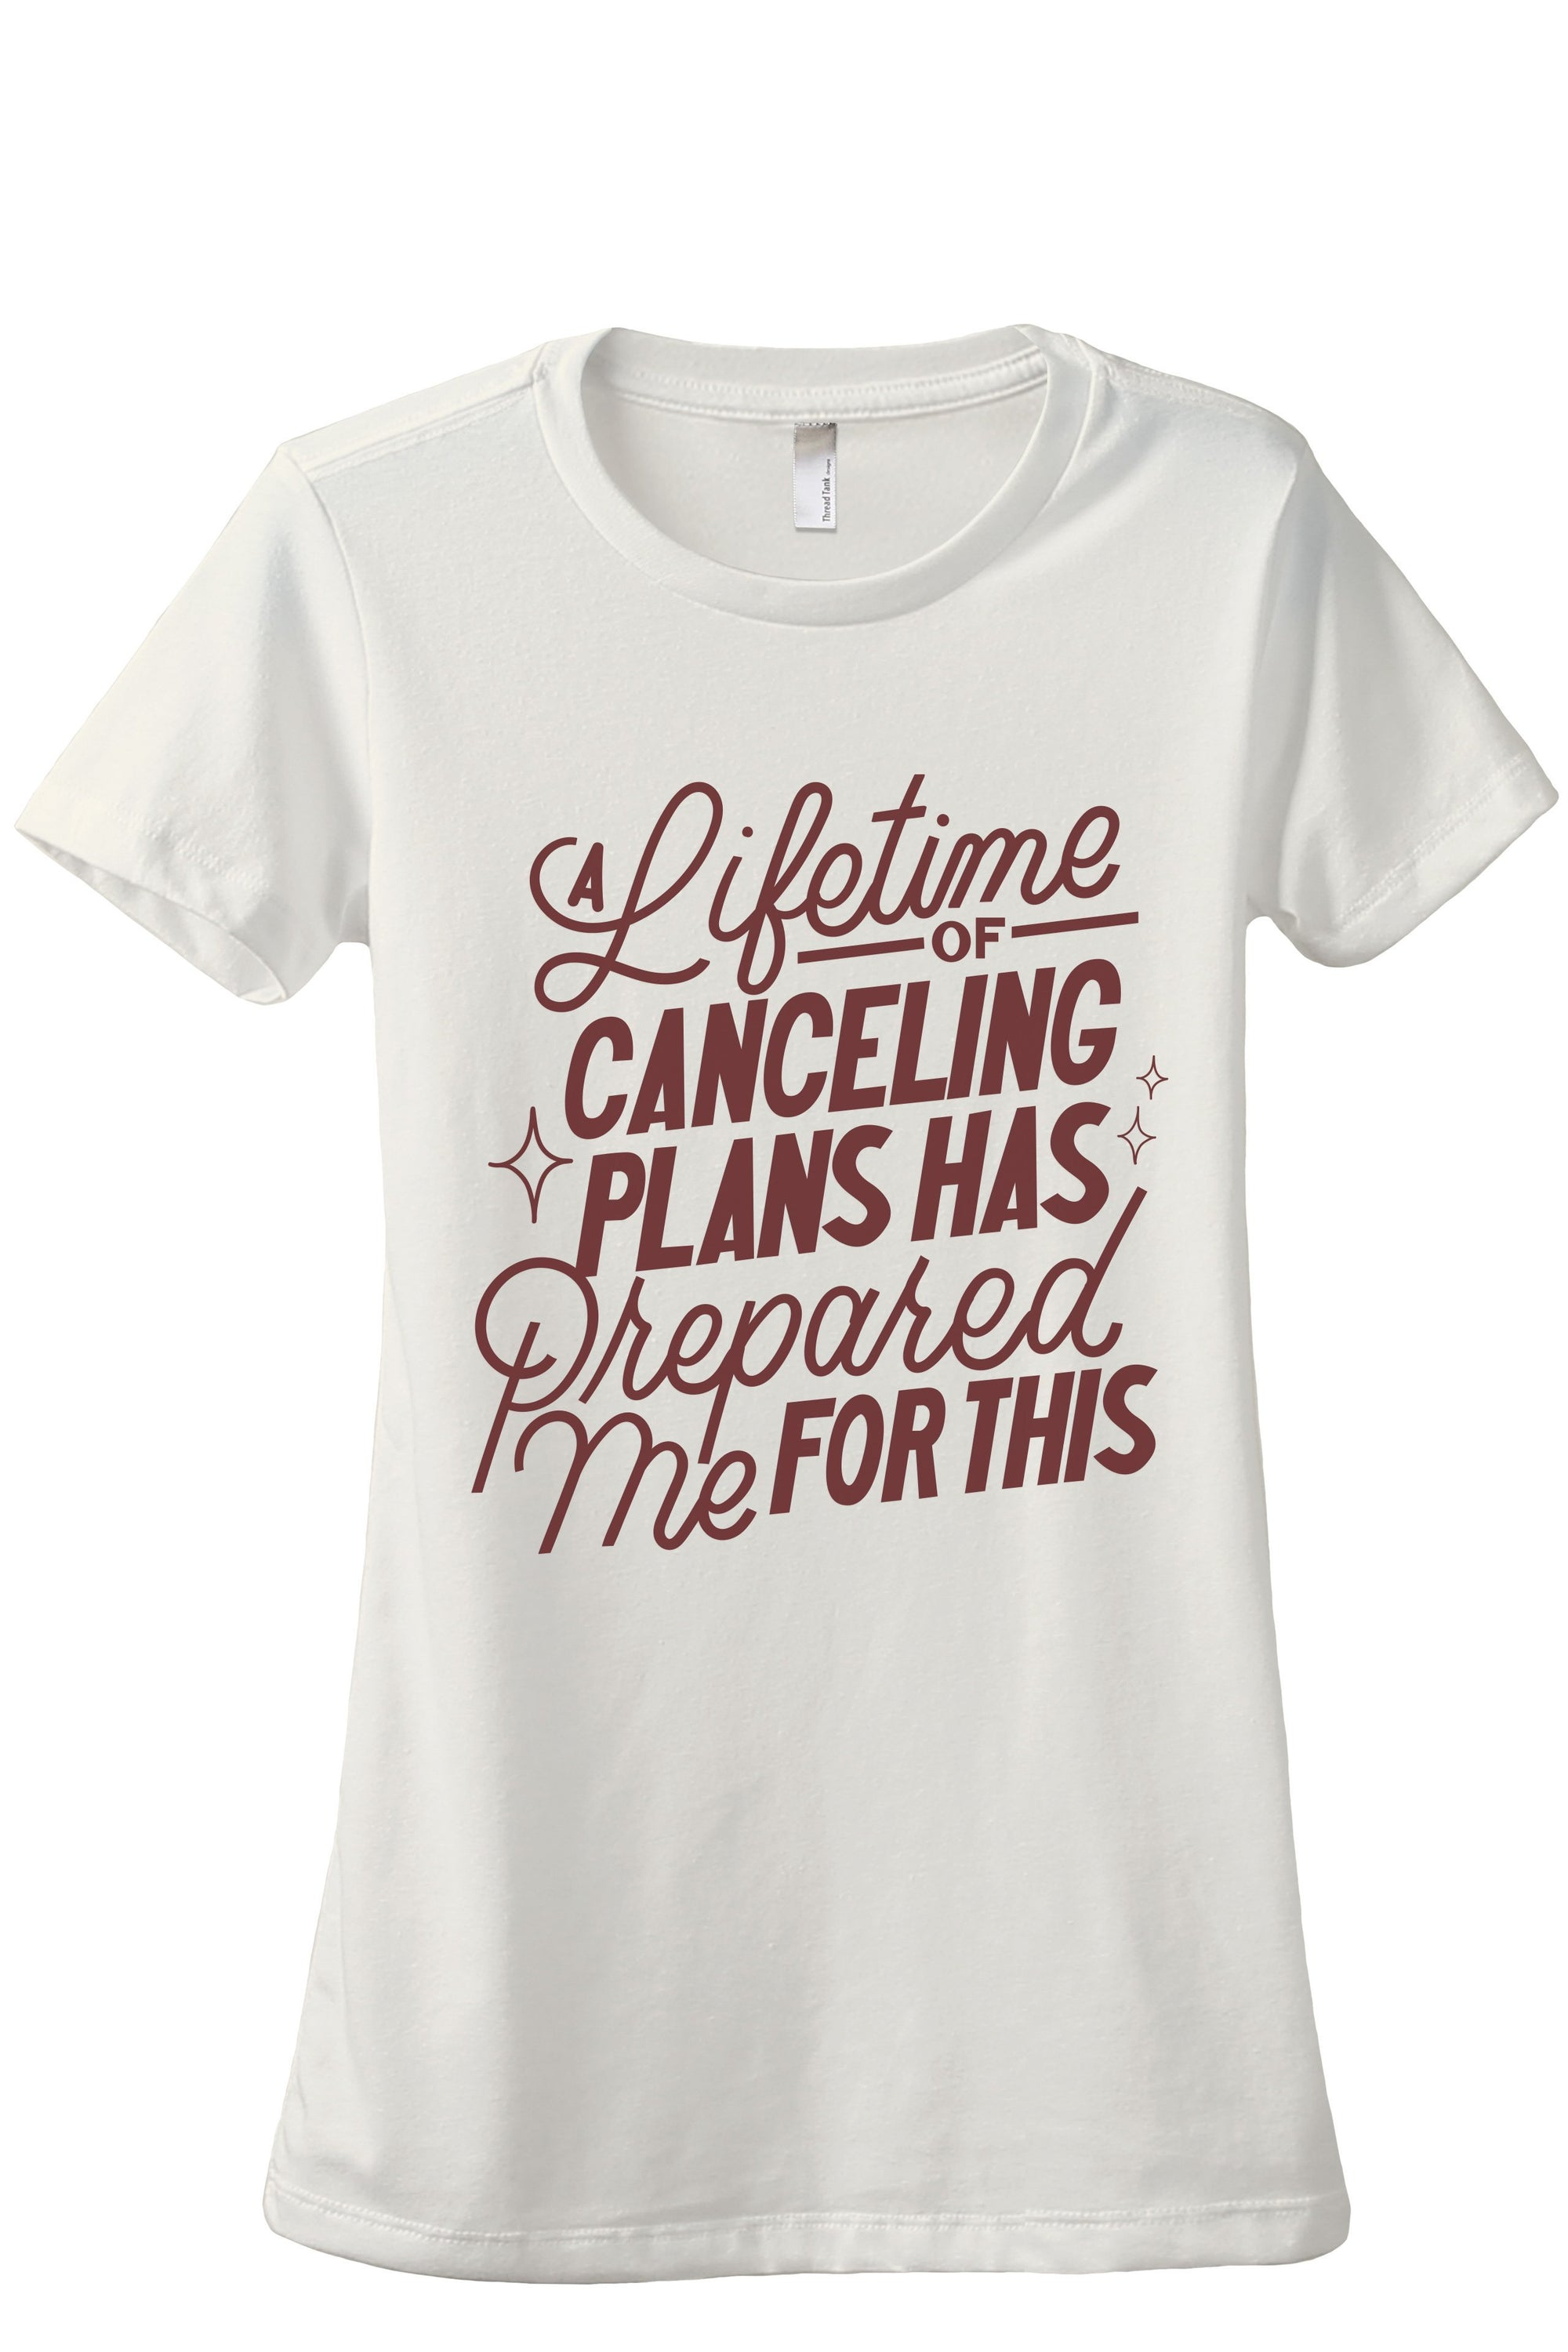 A Lifetime Of Canceling Plans Prepared Me Women's Relaxed Crewneck T-Shirt Top Tee Vintage White